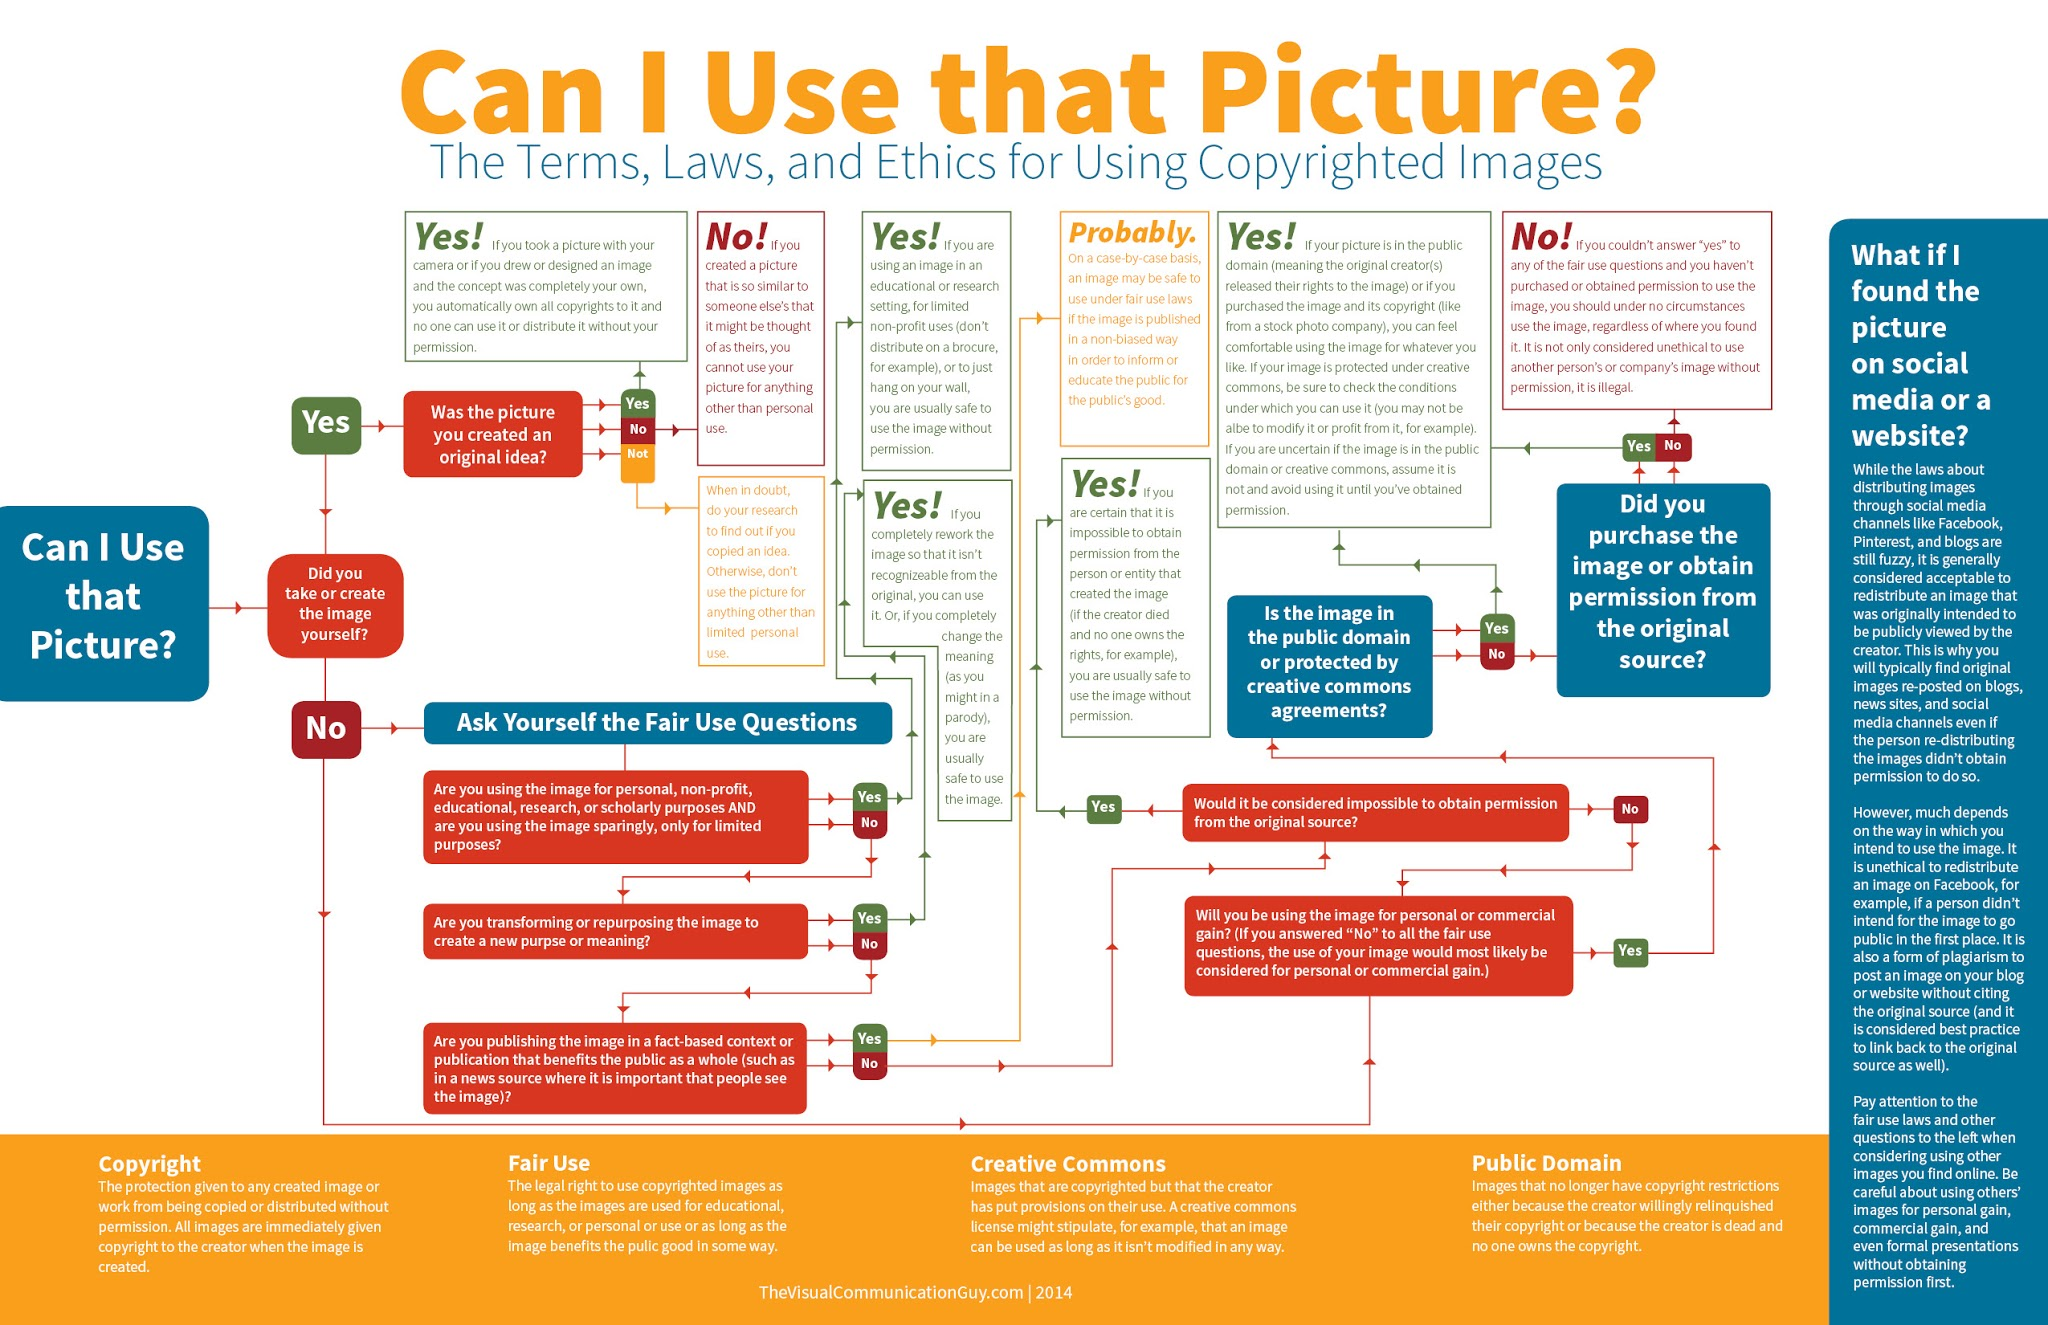 Can I Use that Picture? The Terms, Laws, and Ethics for Using Copyrighted Images on #socialmedia #infographic